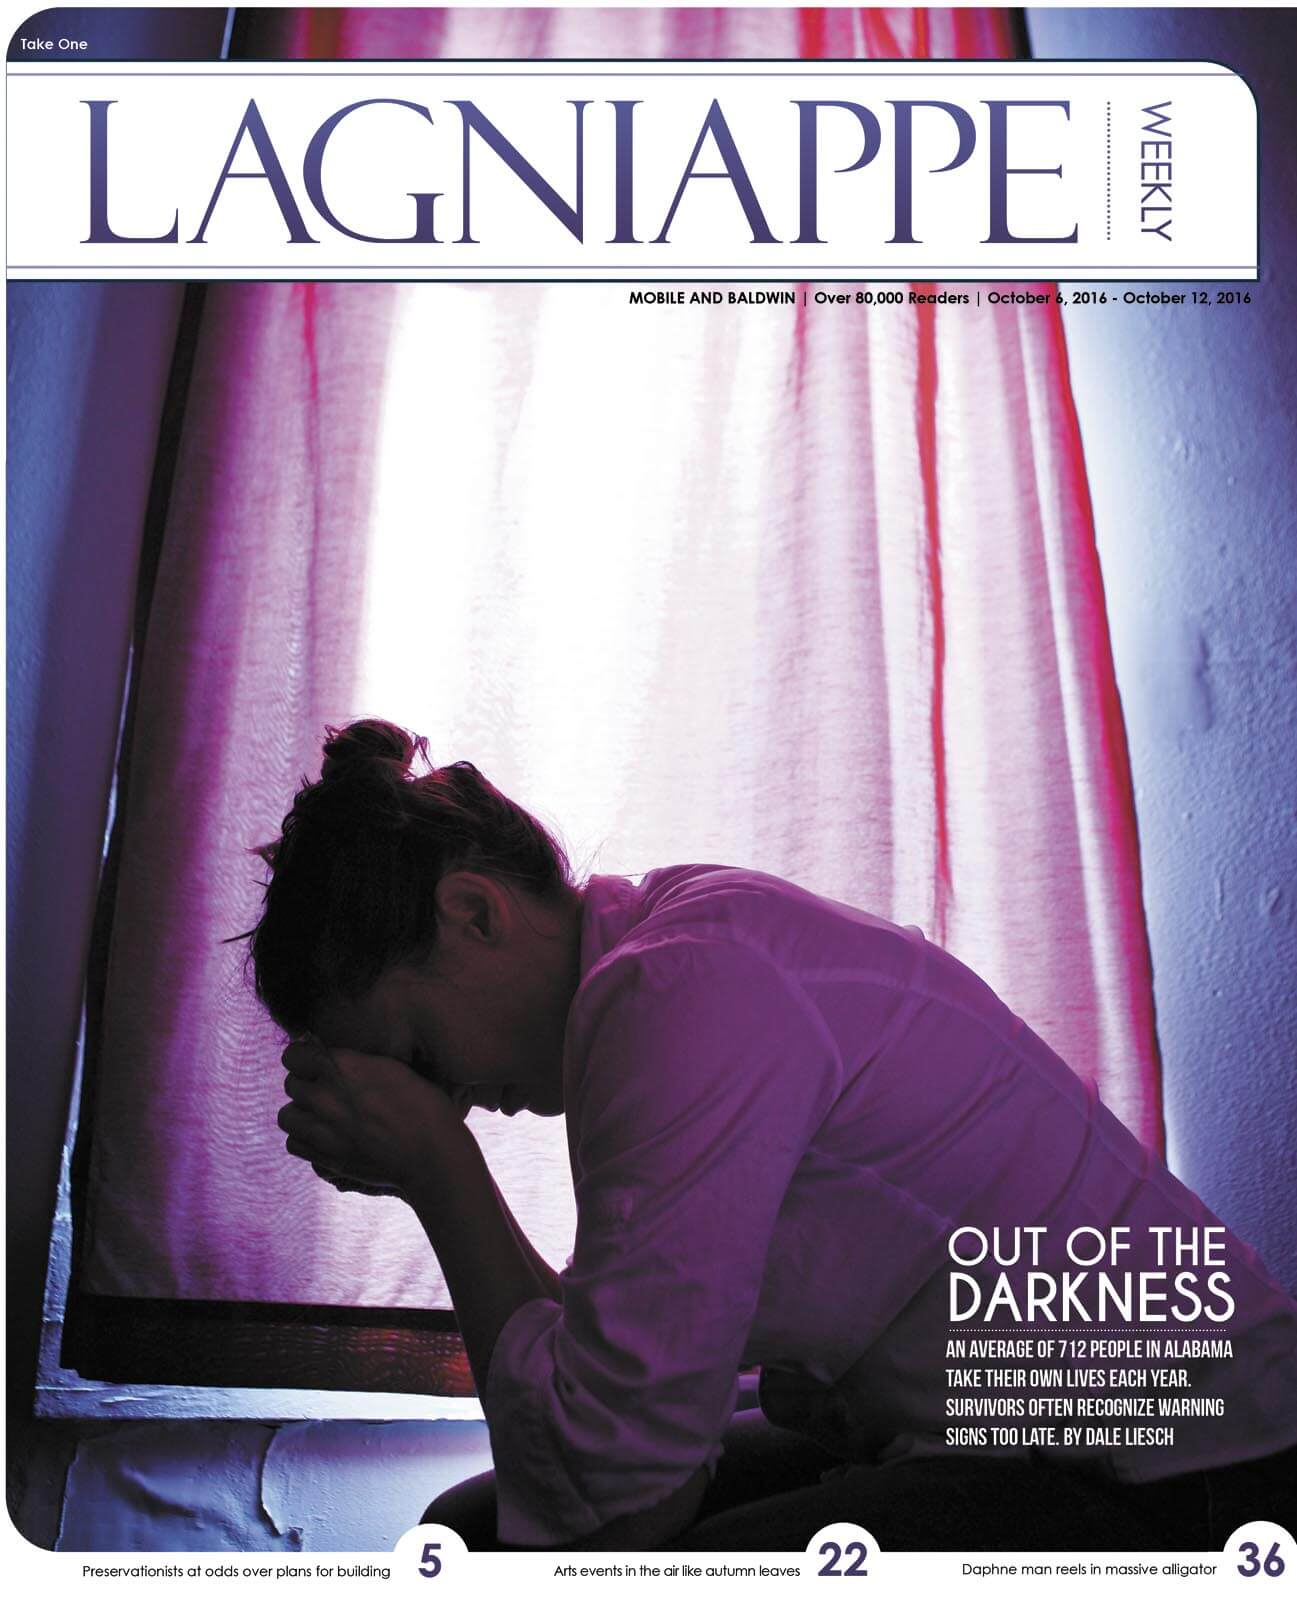 Lagniappe: October 6 – October 12, 2016